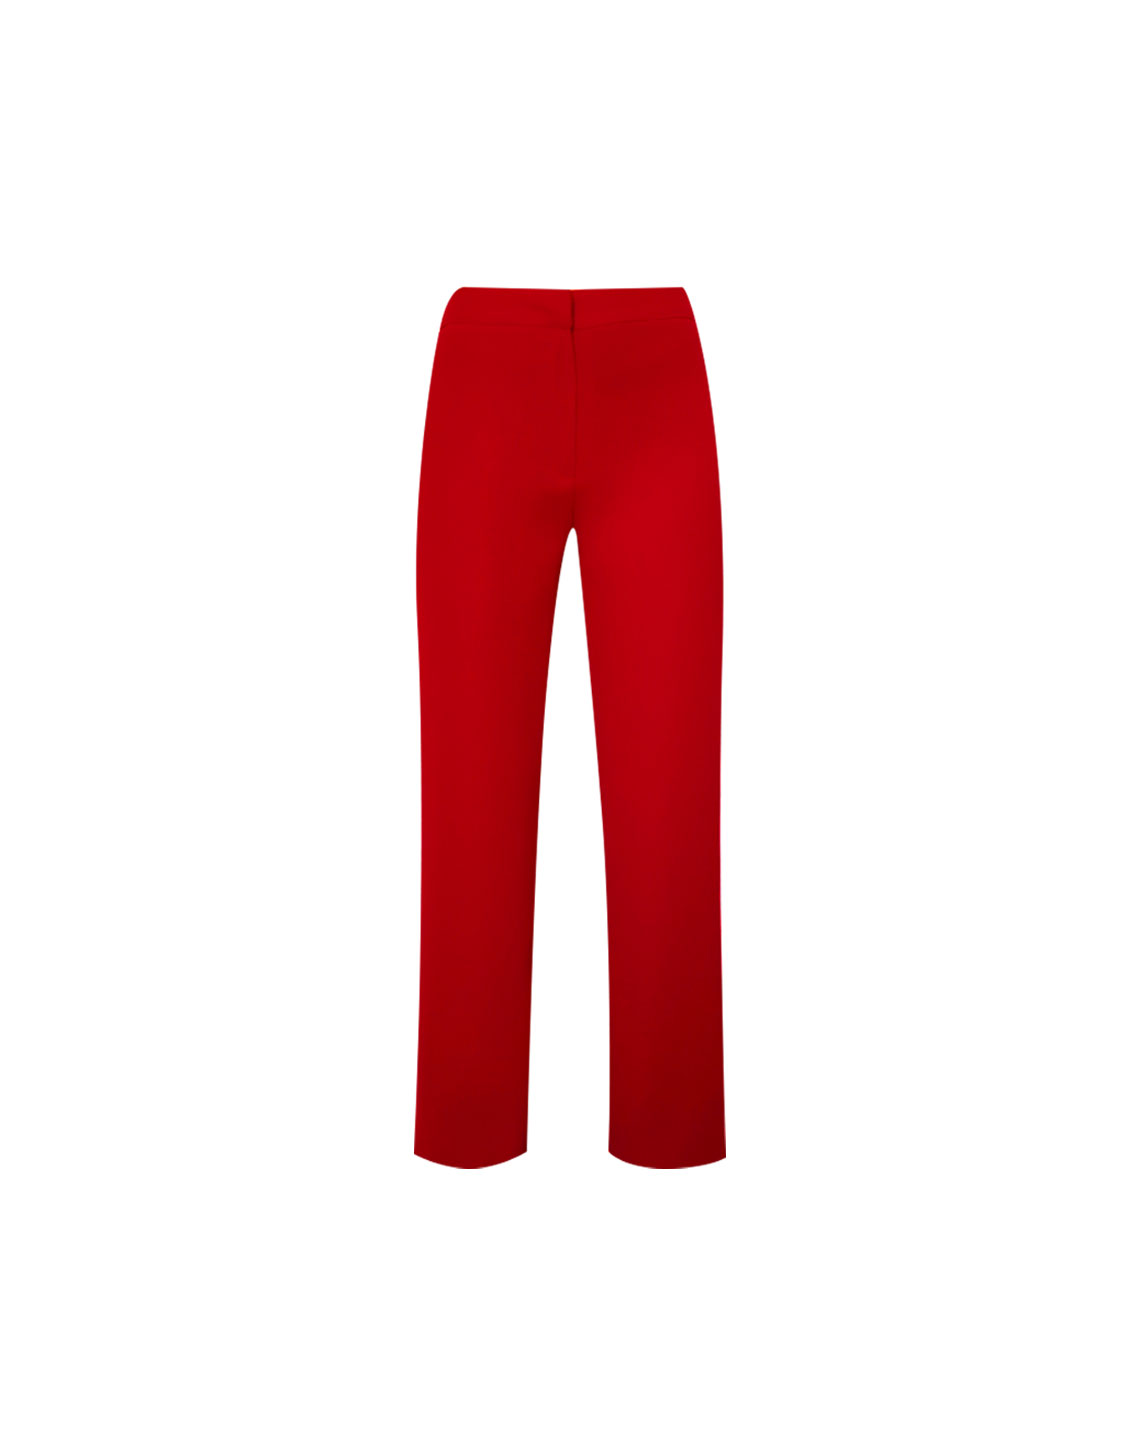 Holly Pants - Red by Jessica K on curated-crowd.com